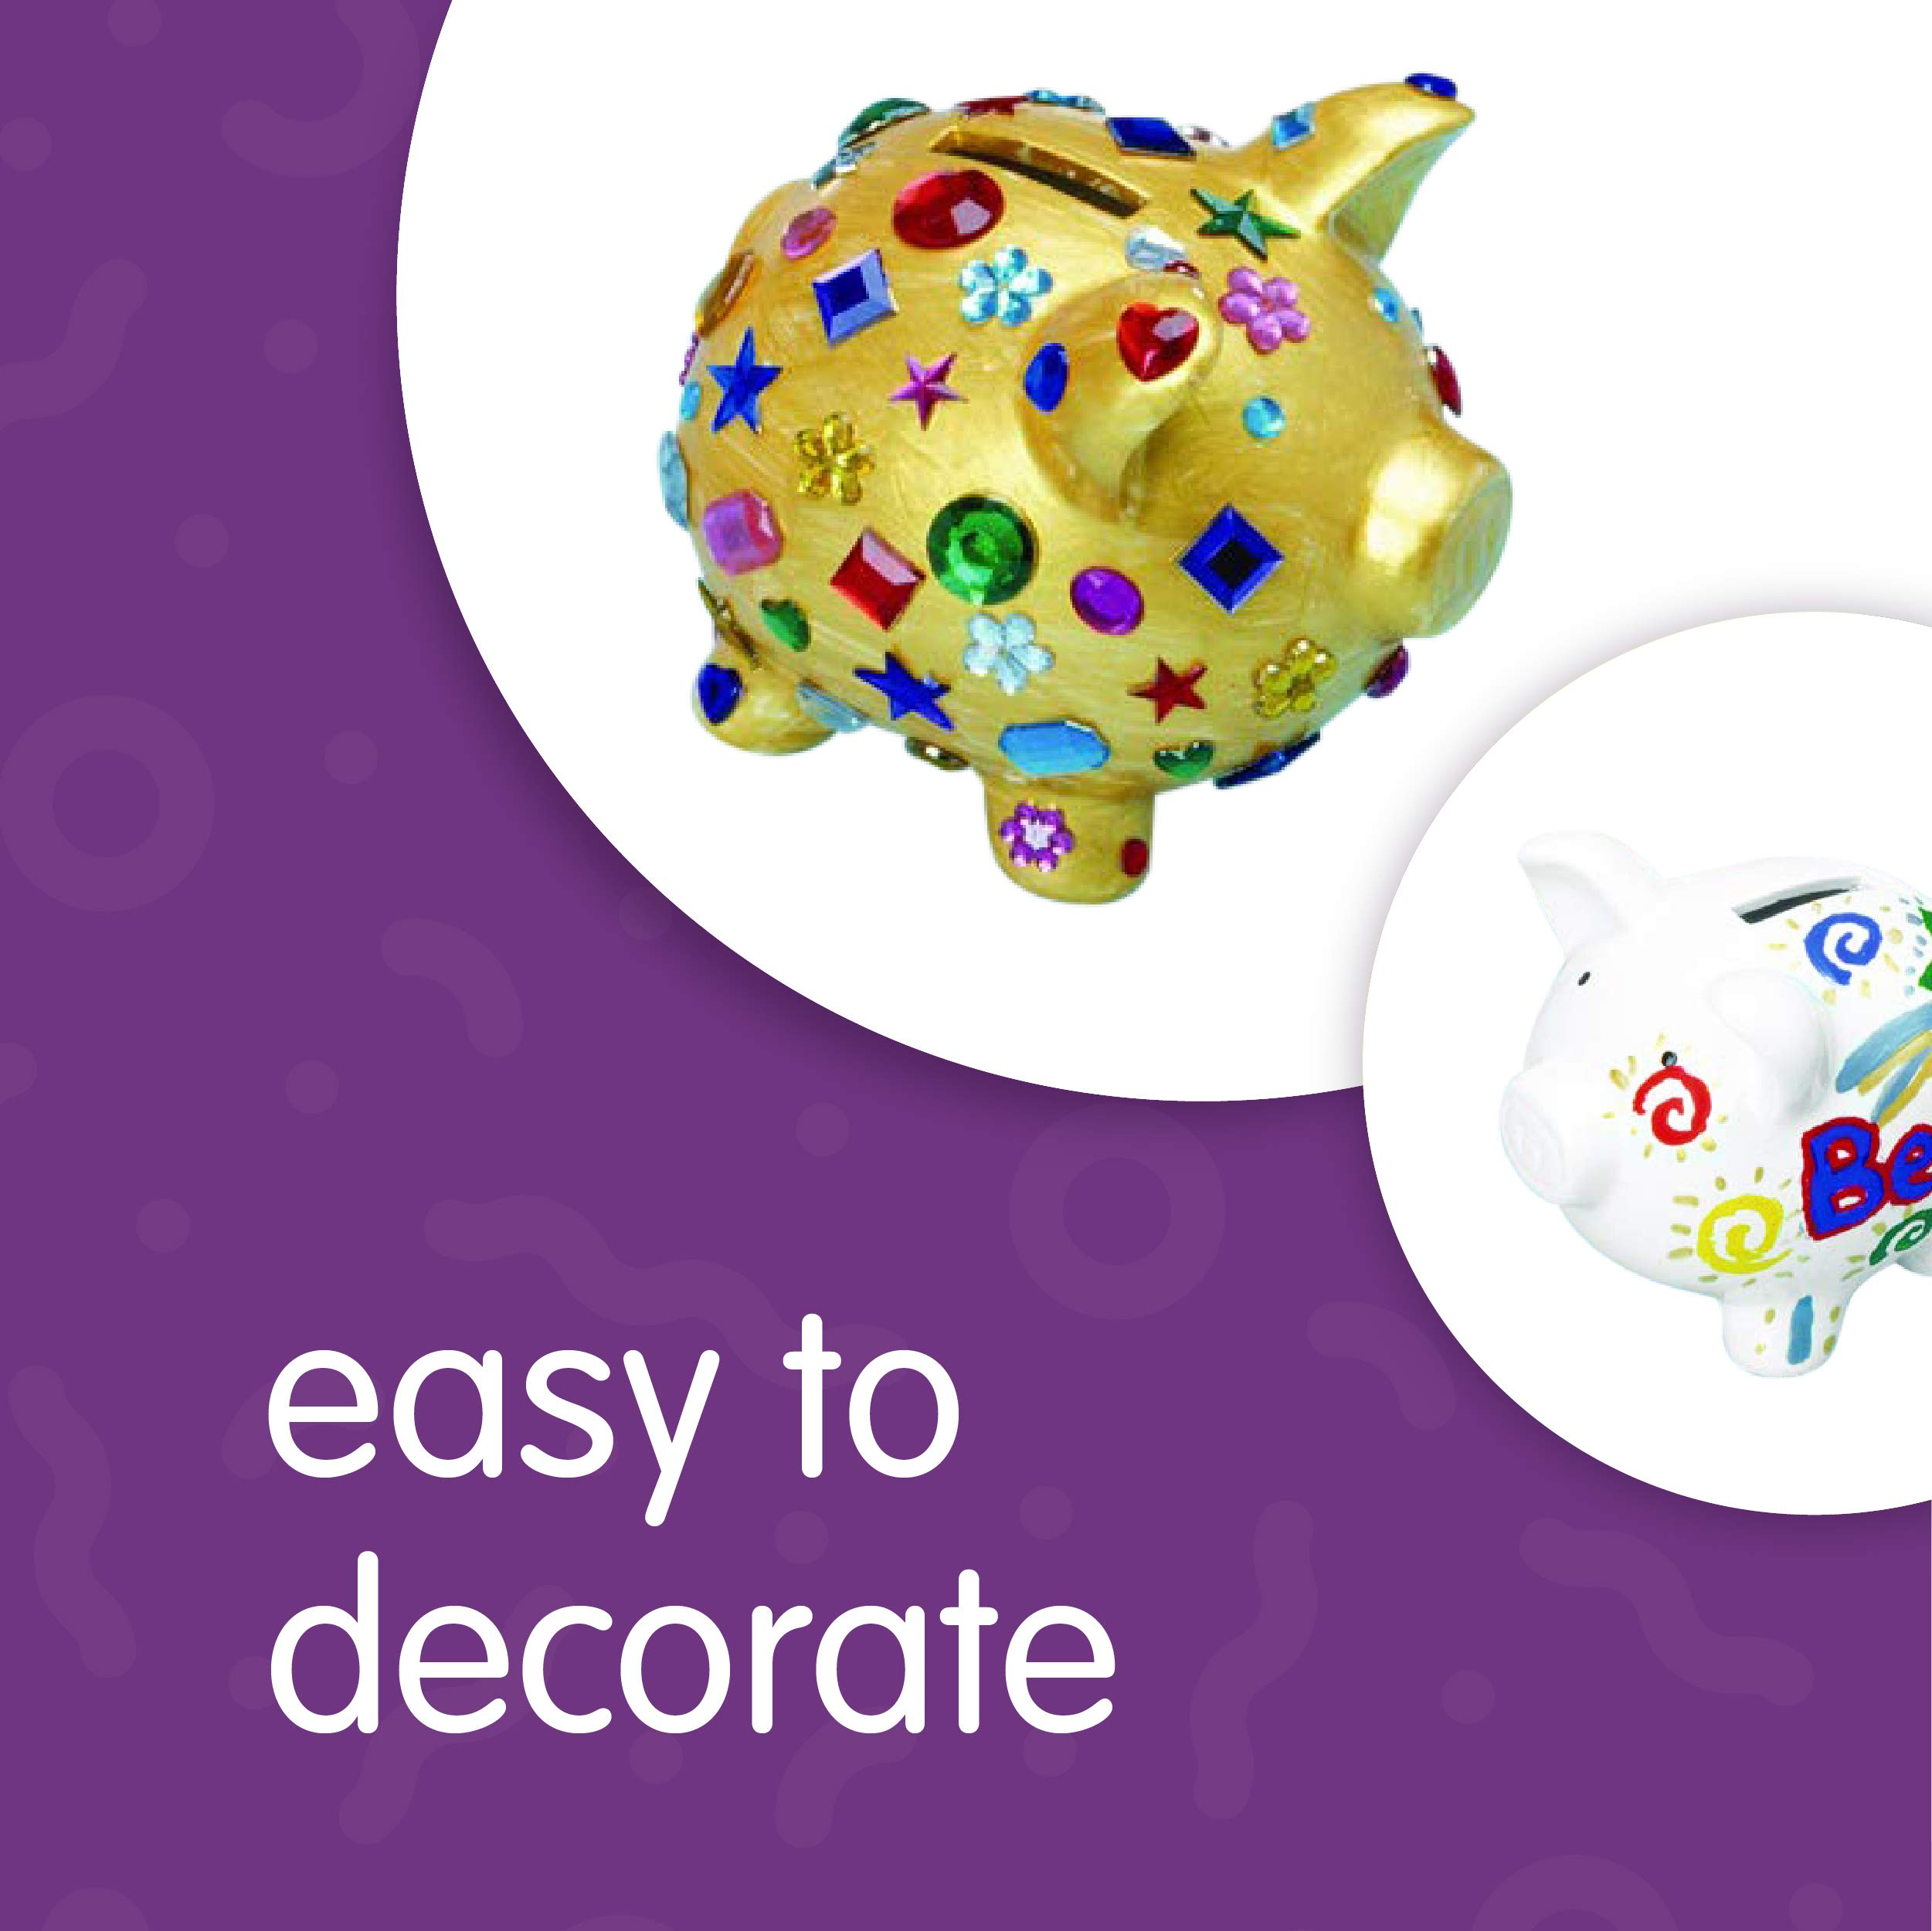 Colorations Decorate a Piggy Bank Kit of 12 Piggy Banks for Kids Art Project (Item # Piggy) by Colorations (Image #4)